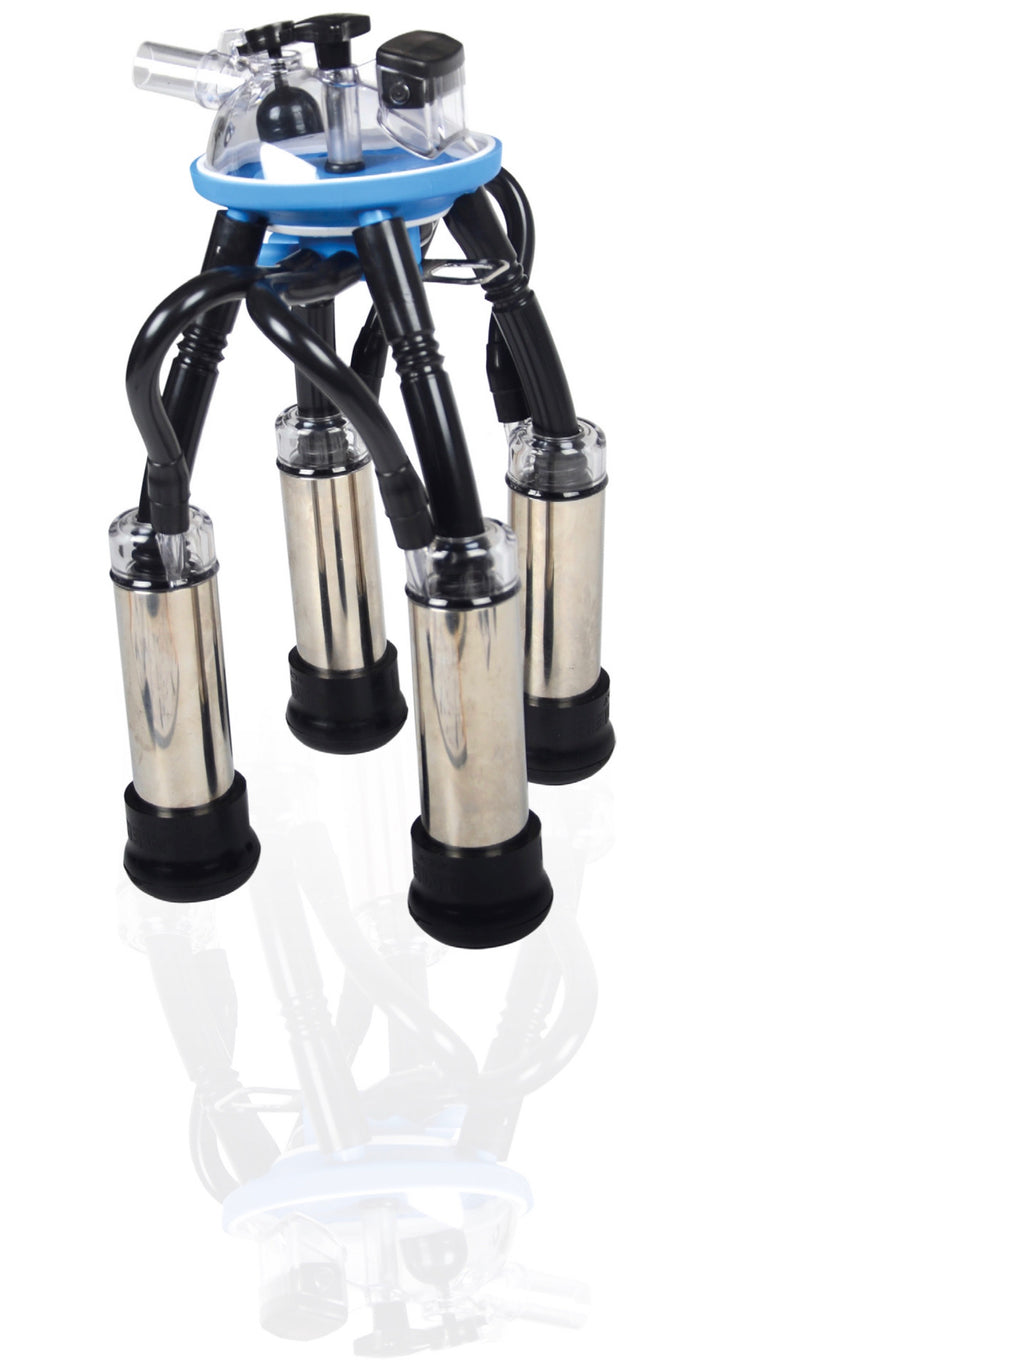 DELMER MILKING CLUSTER for Milking Machines and Milking Parlours